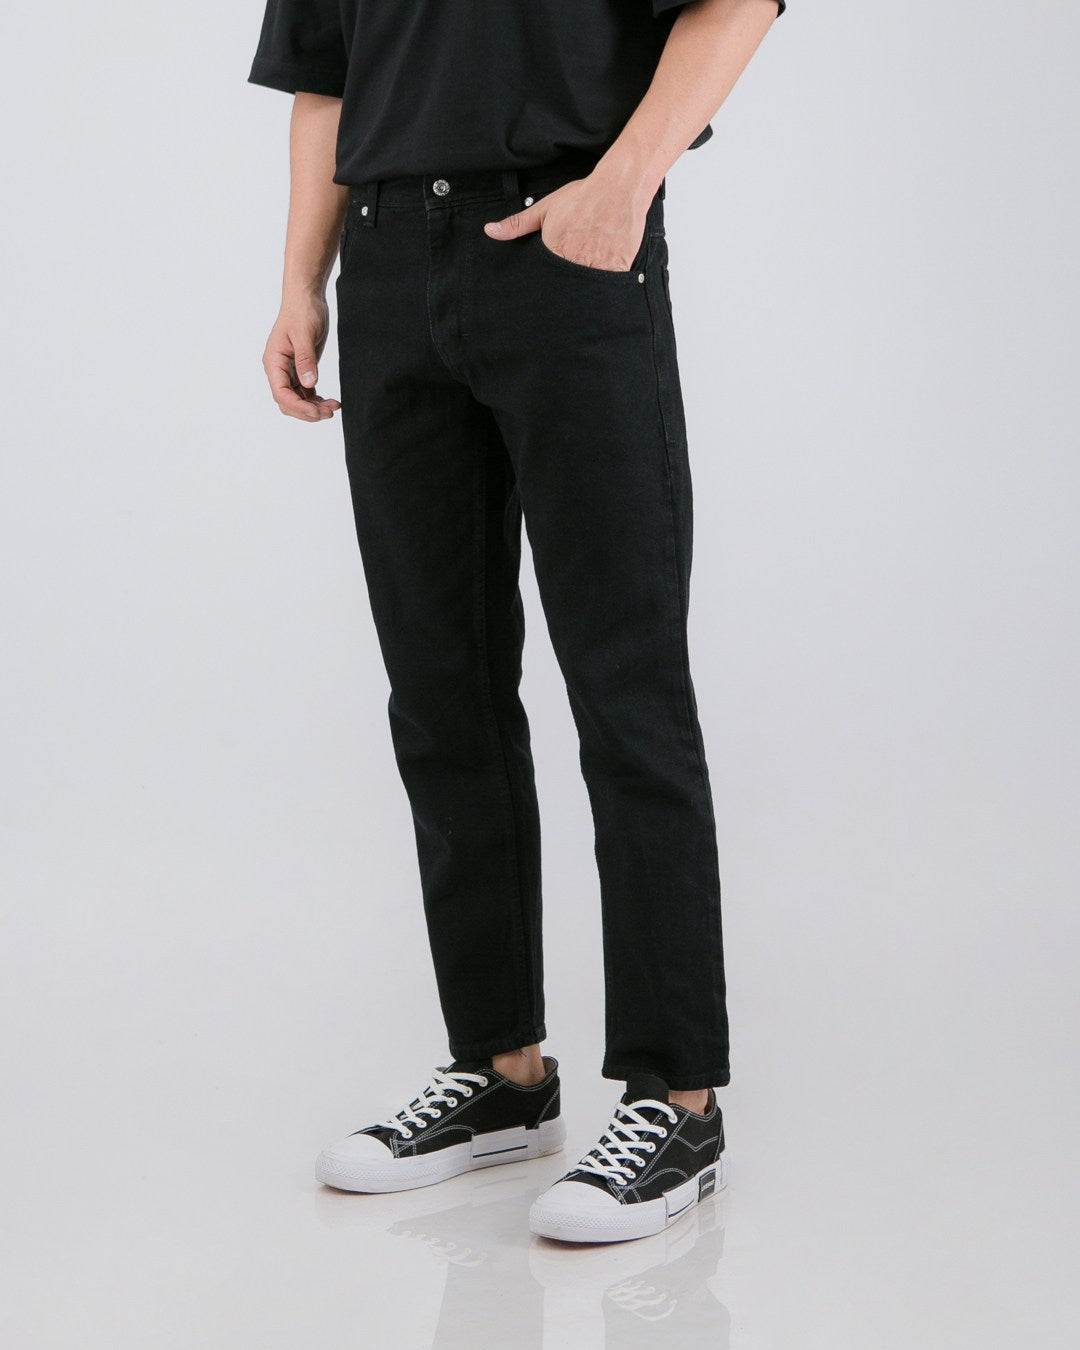 Nml Jeans Slim Non Stretch Black